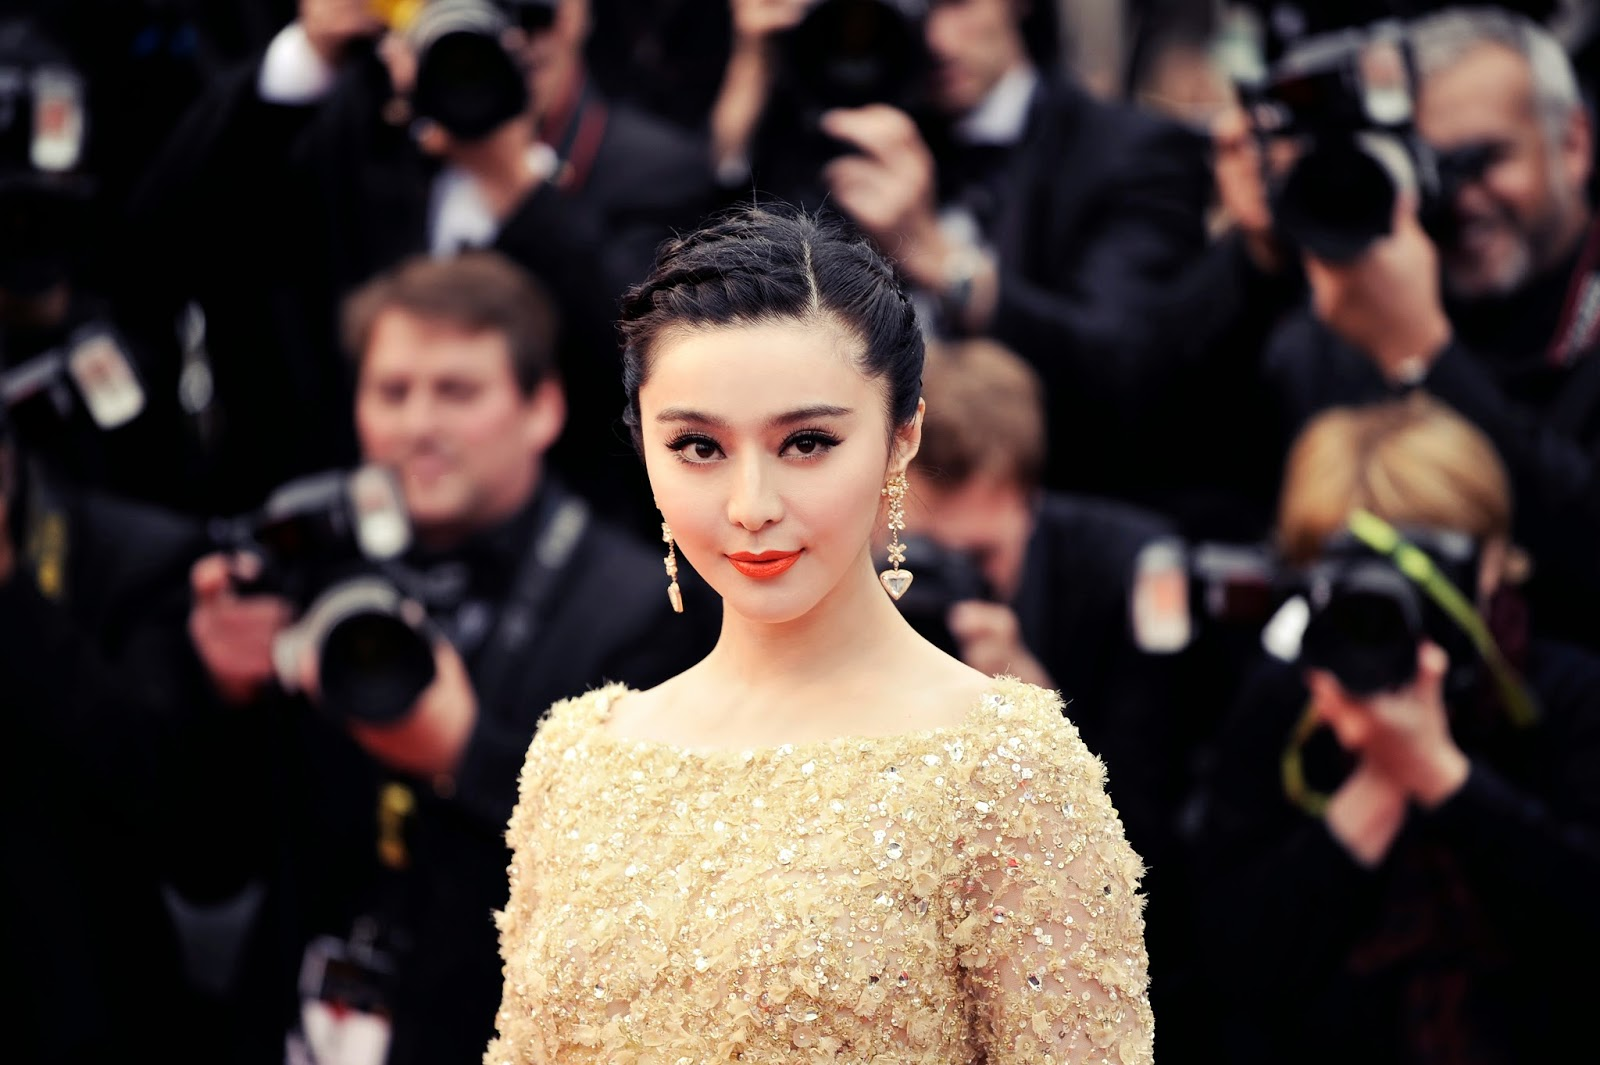 Fan Bingbing Net Worth in 2017